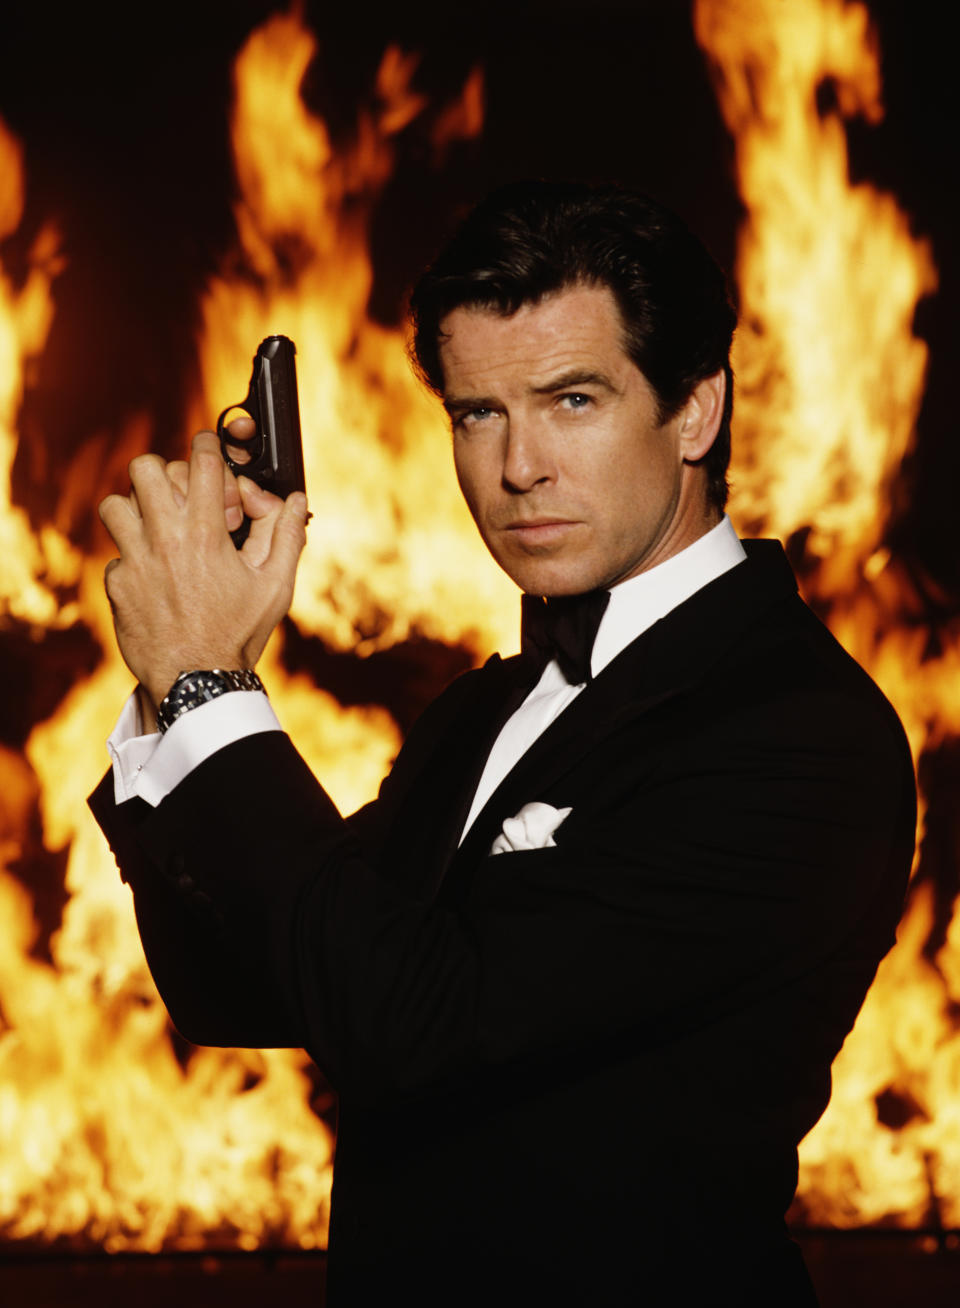 Irish actor Pierce Brosnan stars as James Bond in the film 'GoldenEye', 1995. He is holding his iconic Walther PPK. (Photo by Keith Hamshere/Getty Images)